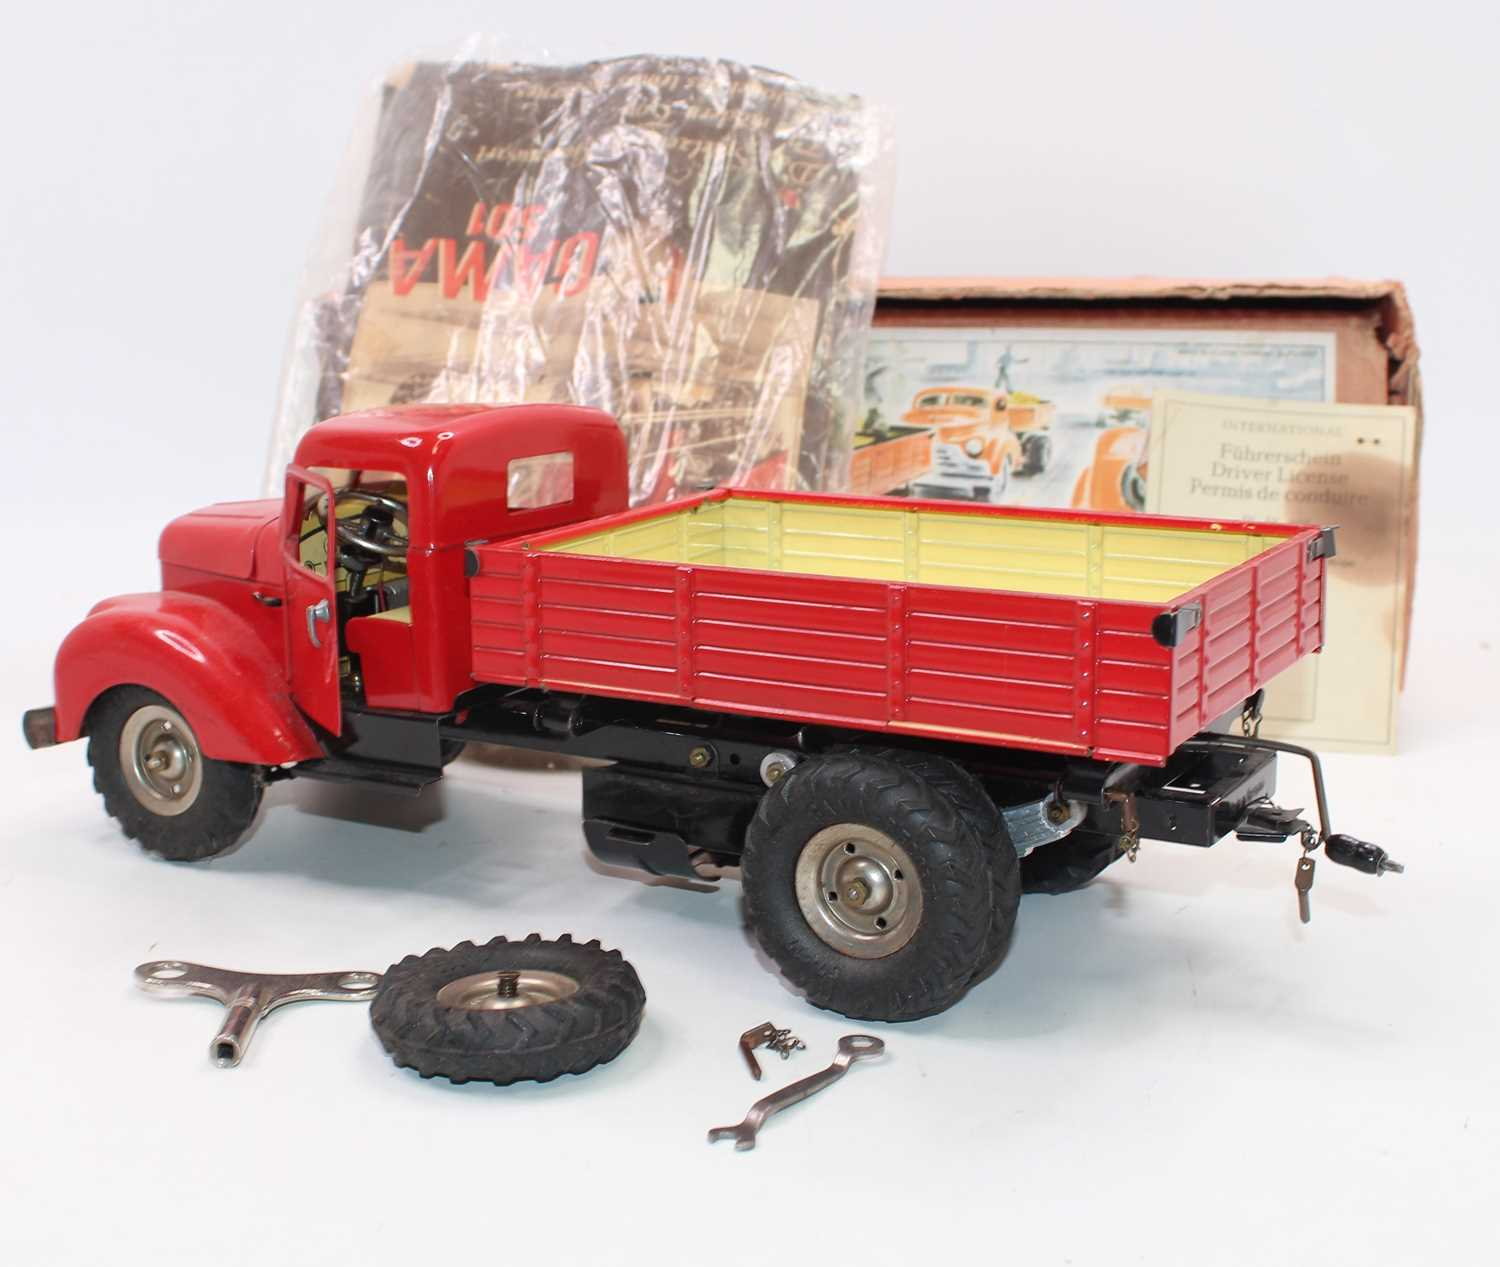 Gama No.501 battery operated and tinplate tipping truck, comprising red cab and back, black chassis, - Image 4 of 6